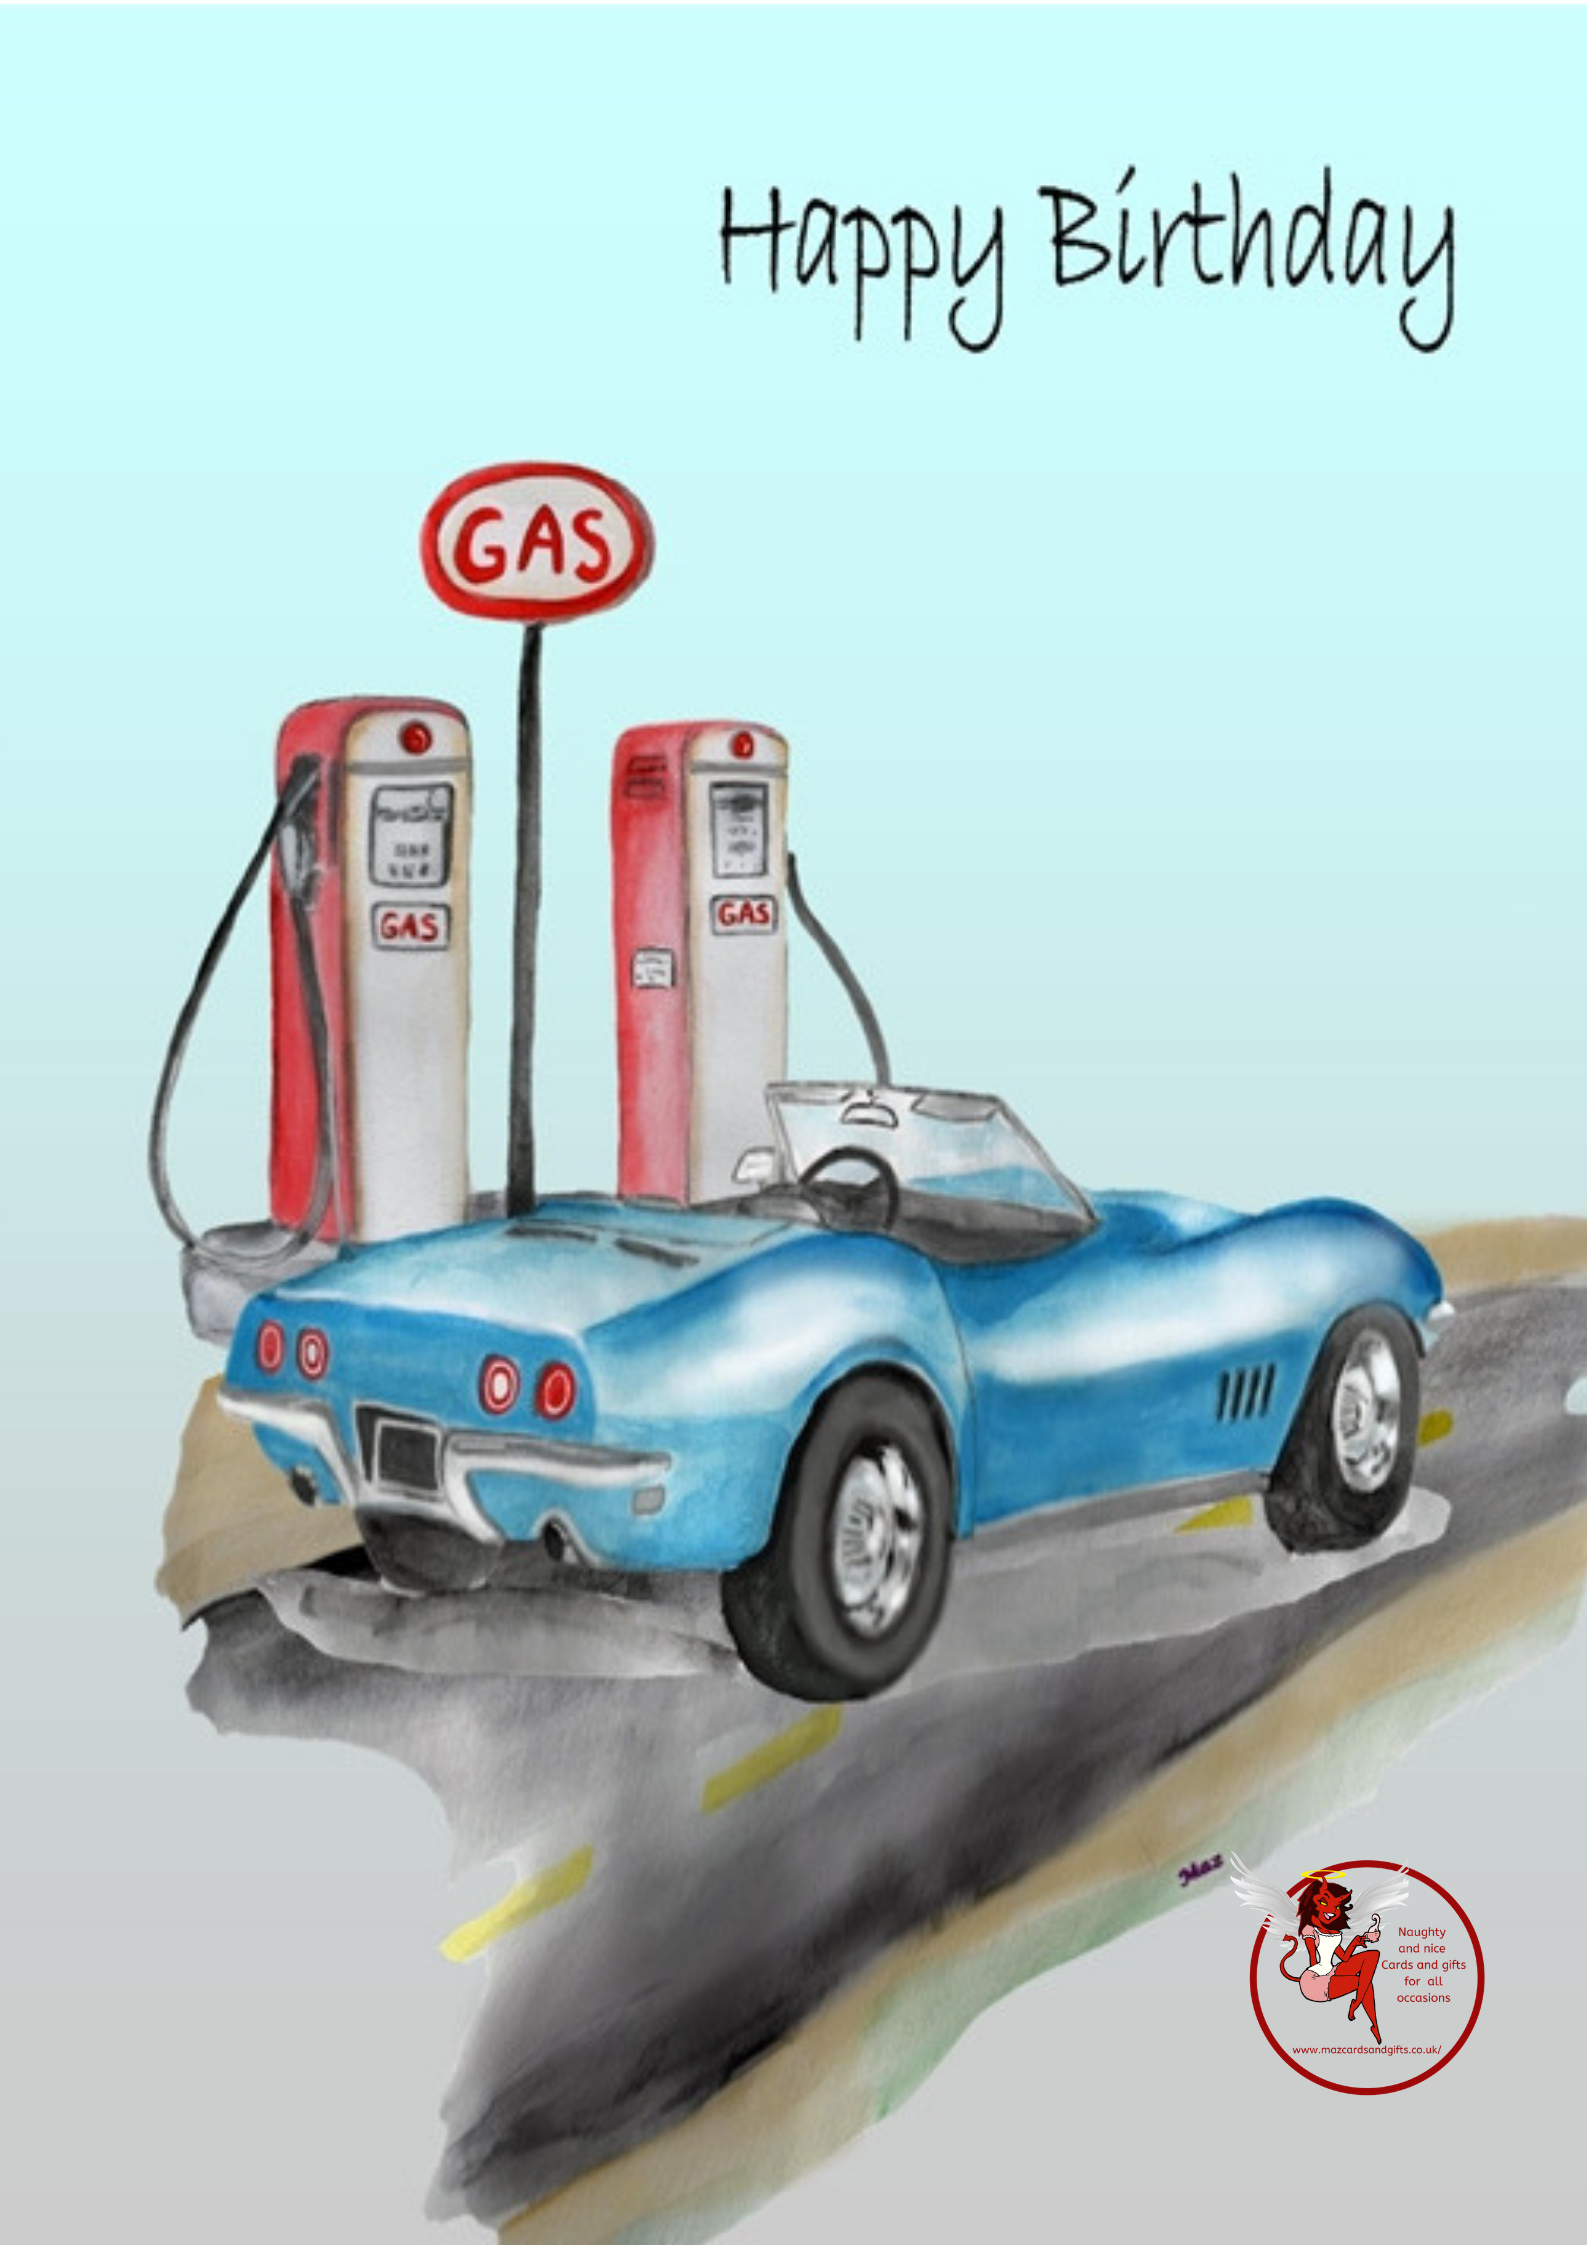 General Birthday - Blue Car - Retro Gas Pump - Order No 006